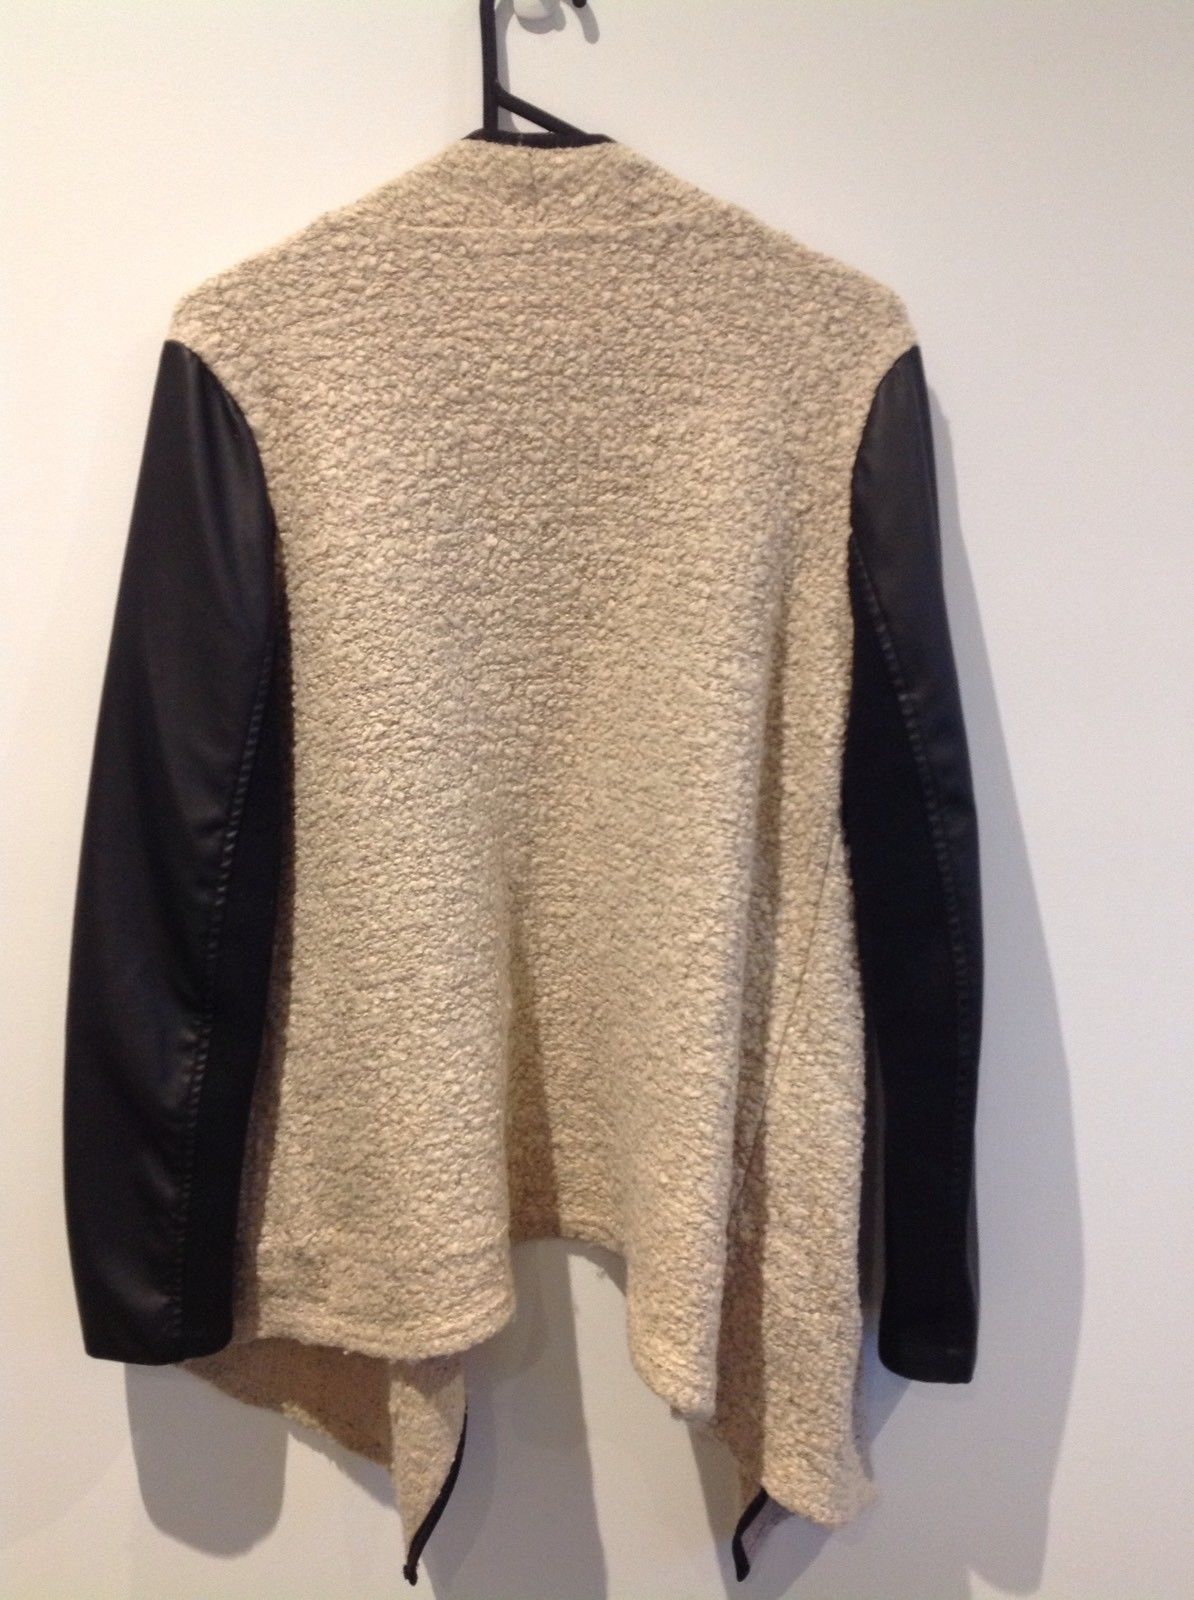 AMAZING Leatherette and Knit Black and Beige Throw Over Jacket Cardigan Size 10